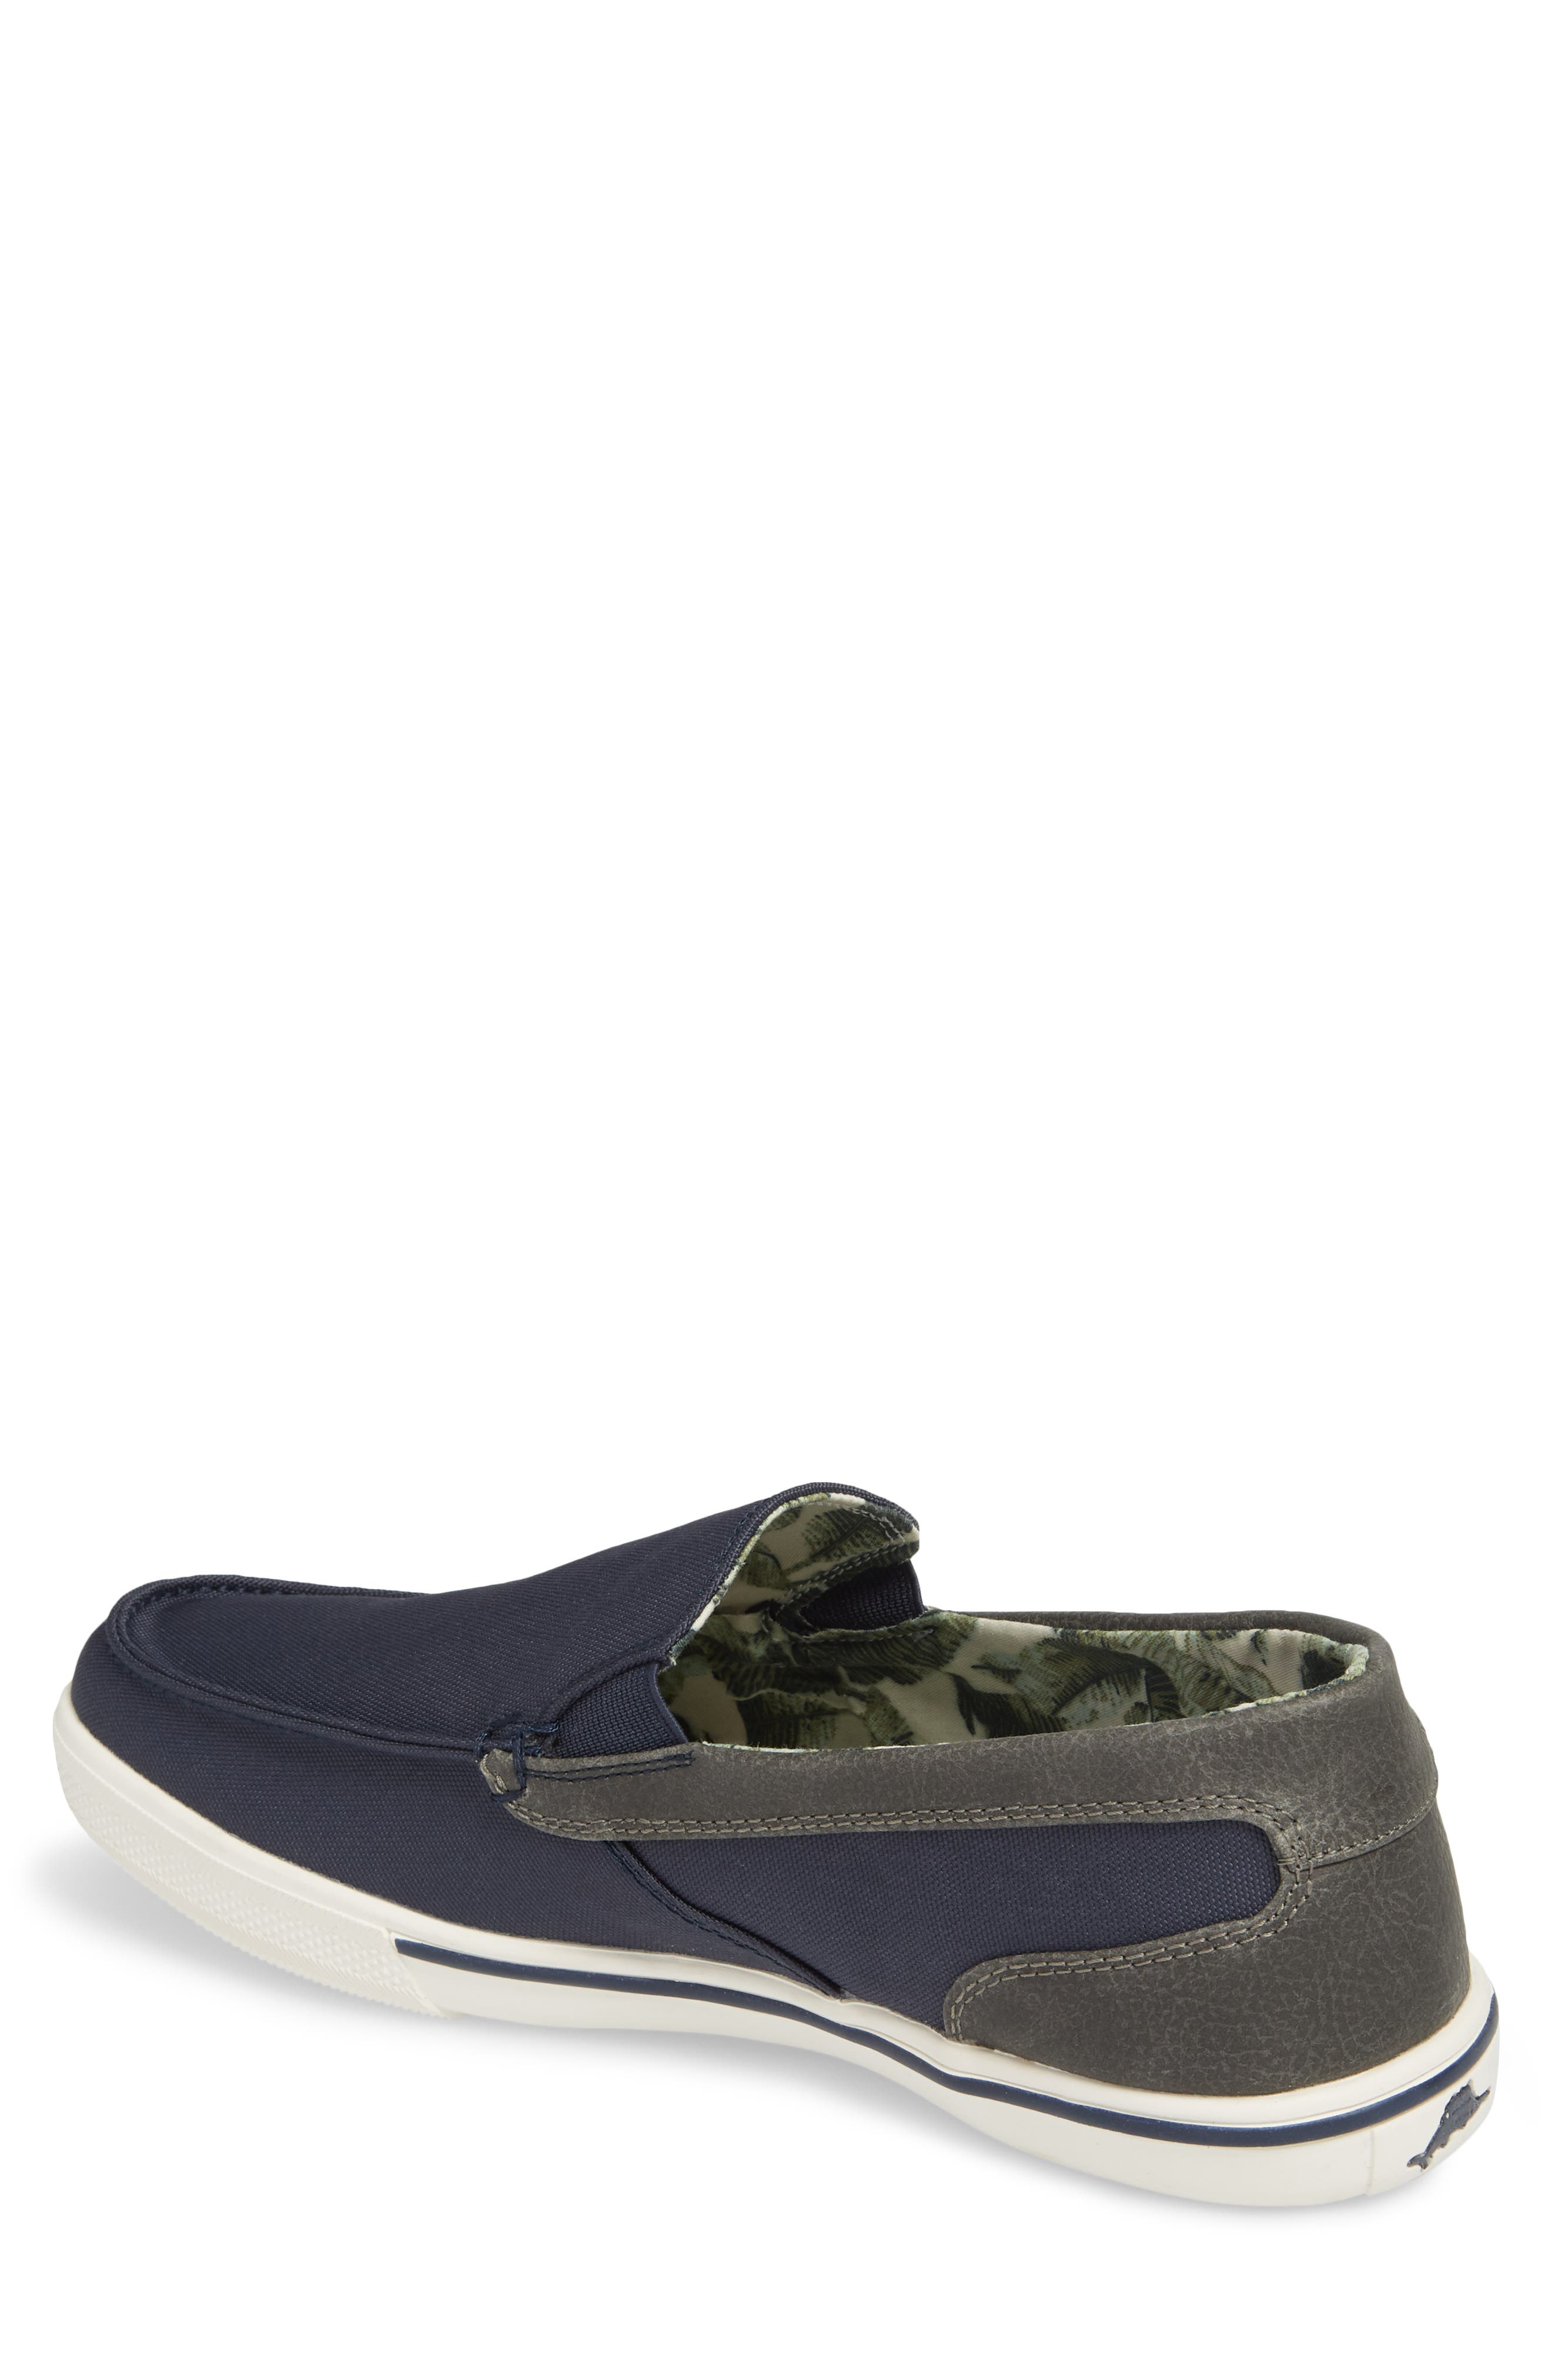 Calderon Loafer,                             Alternate thumbnail 2, color,                             Navy Canvas/ Leather